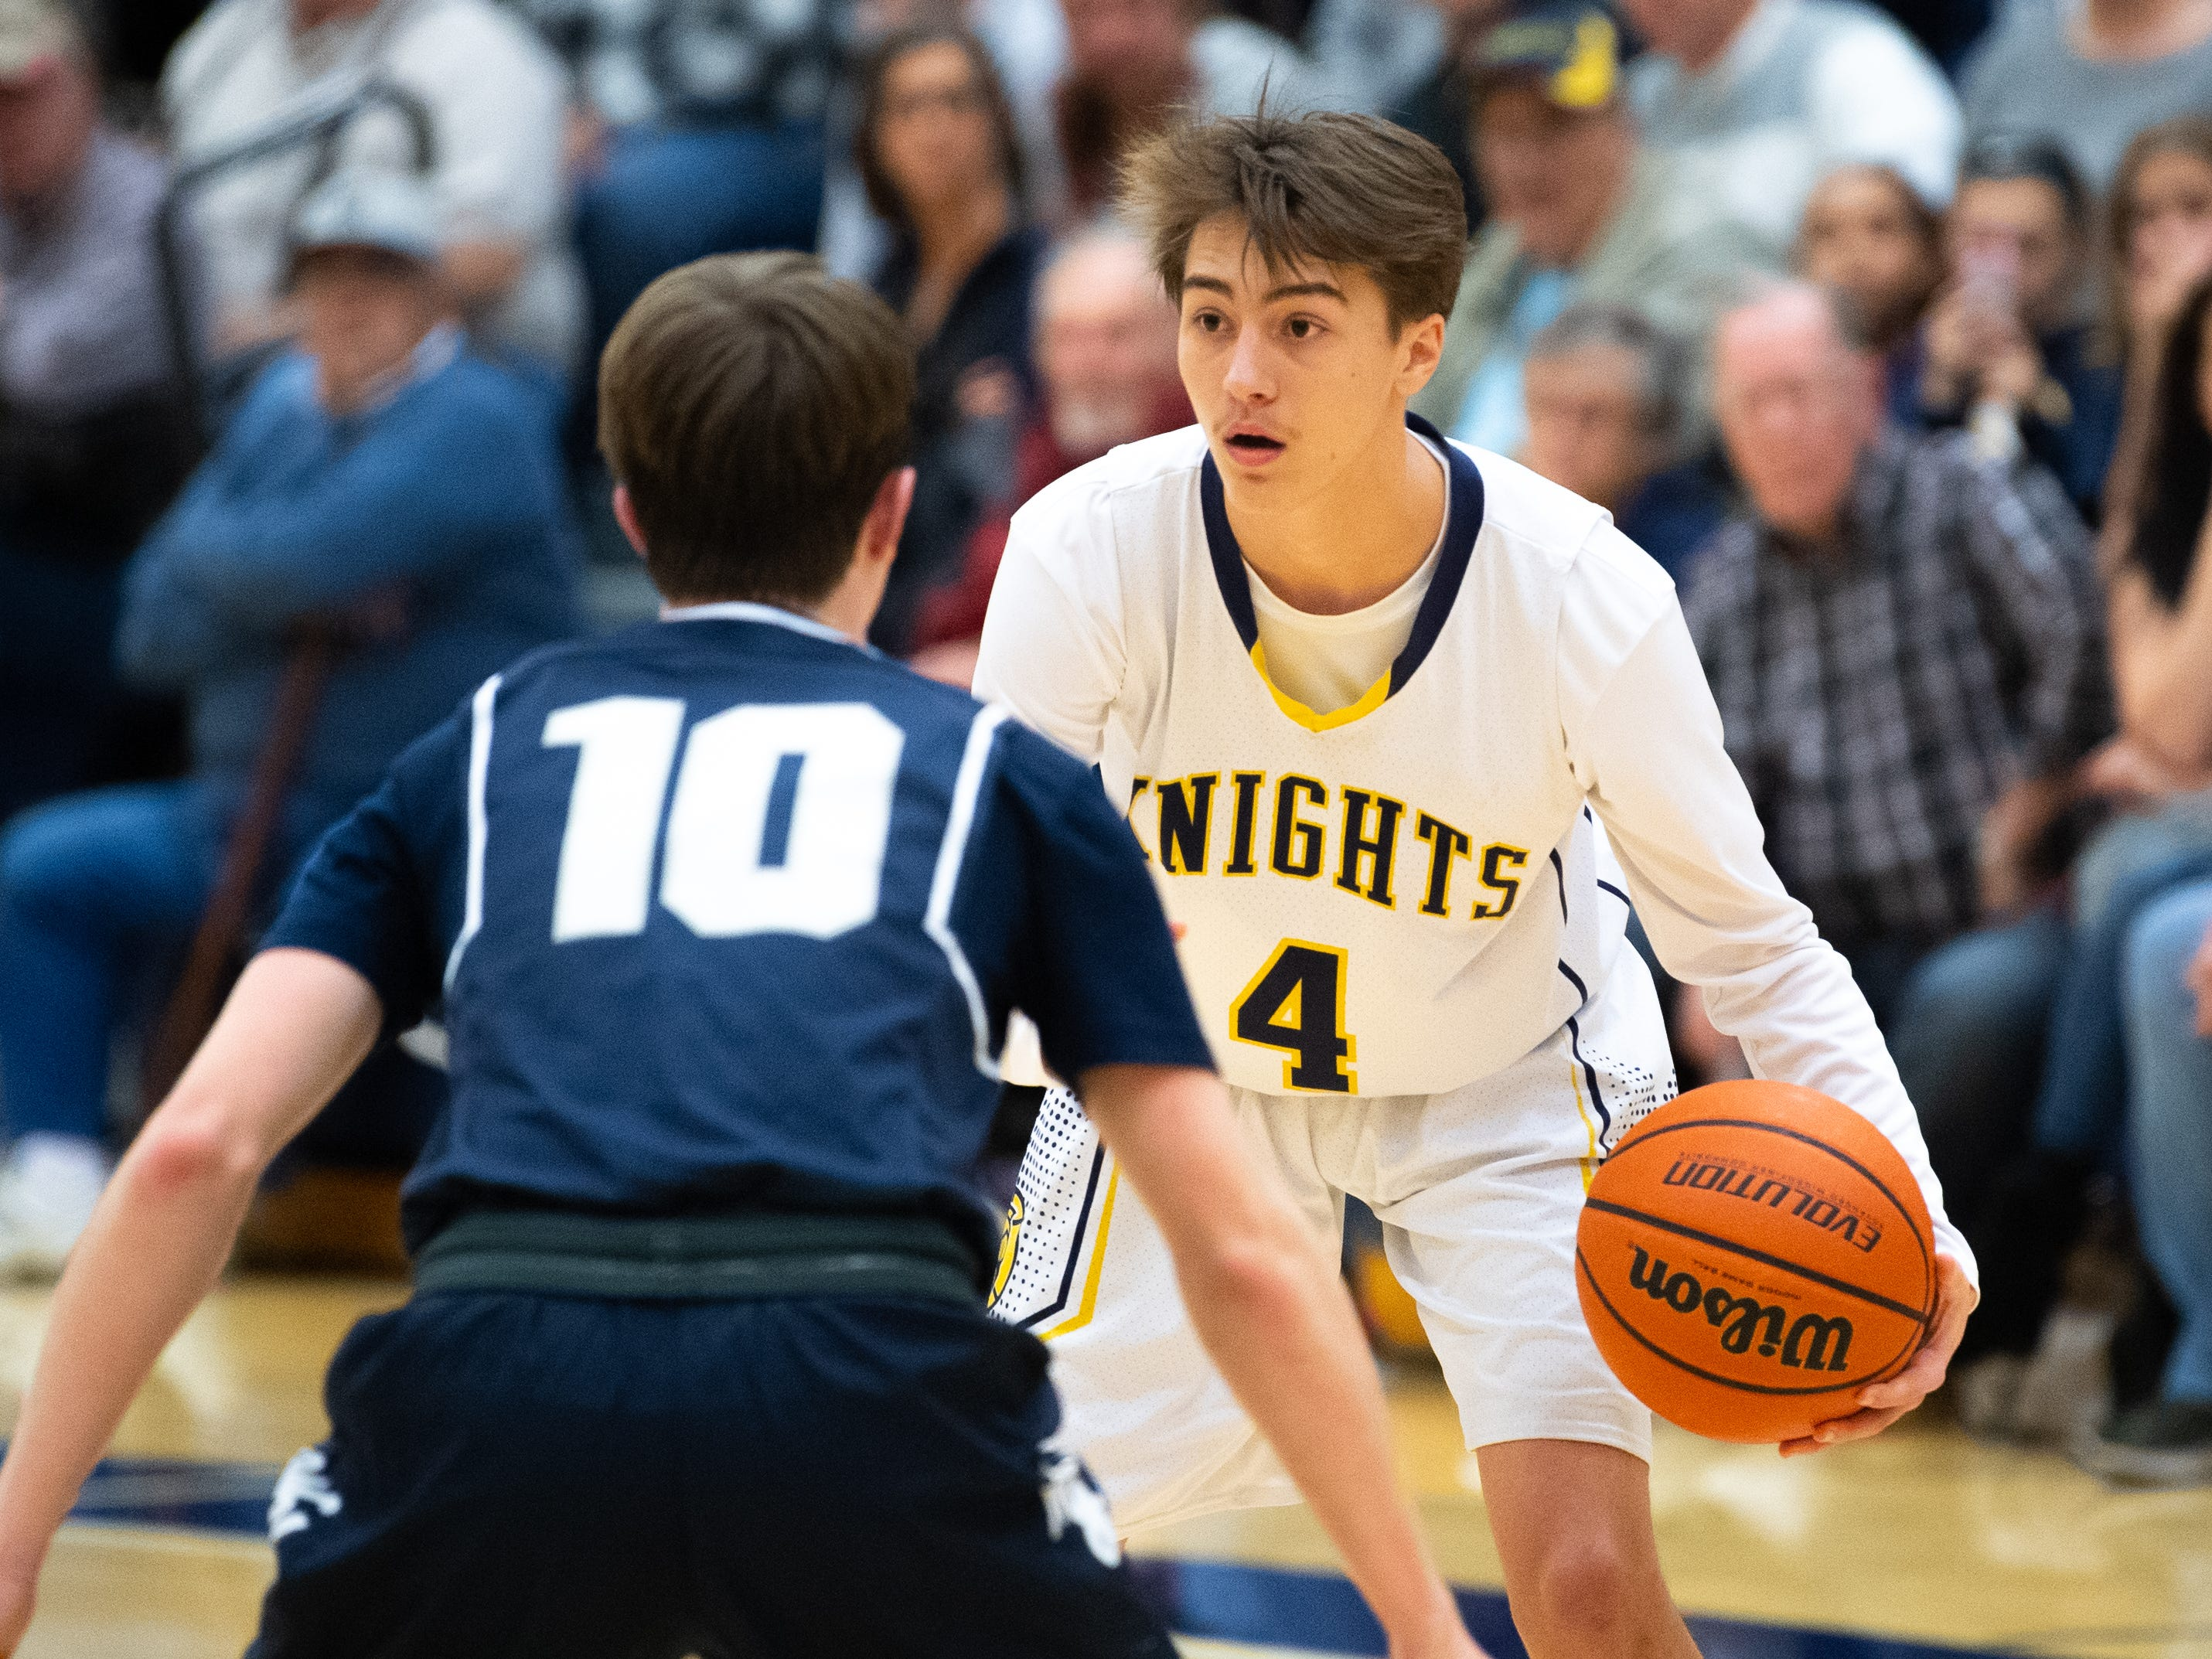 Trevor Seitz (4) scans the floor during the YAIAA boys' basketball game between Eastern York and West York, Friday, January 25, 2019 at Eastern York High School. The Golden Knights defeated the Bulldogs 59 to 55.